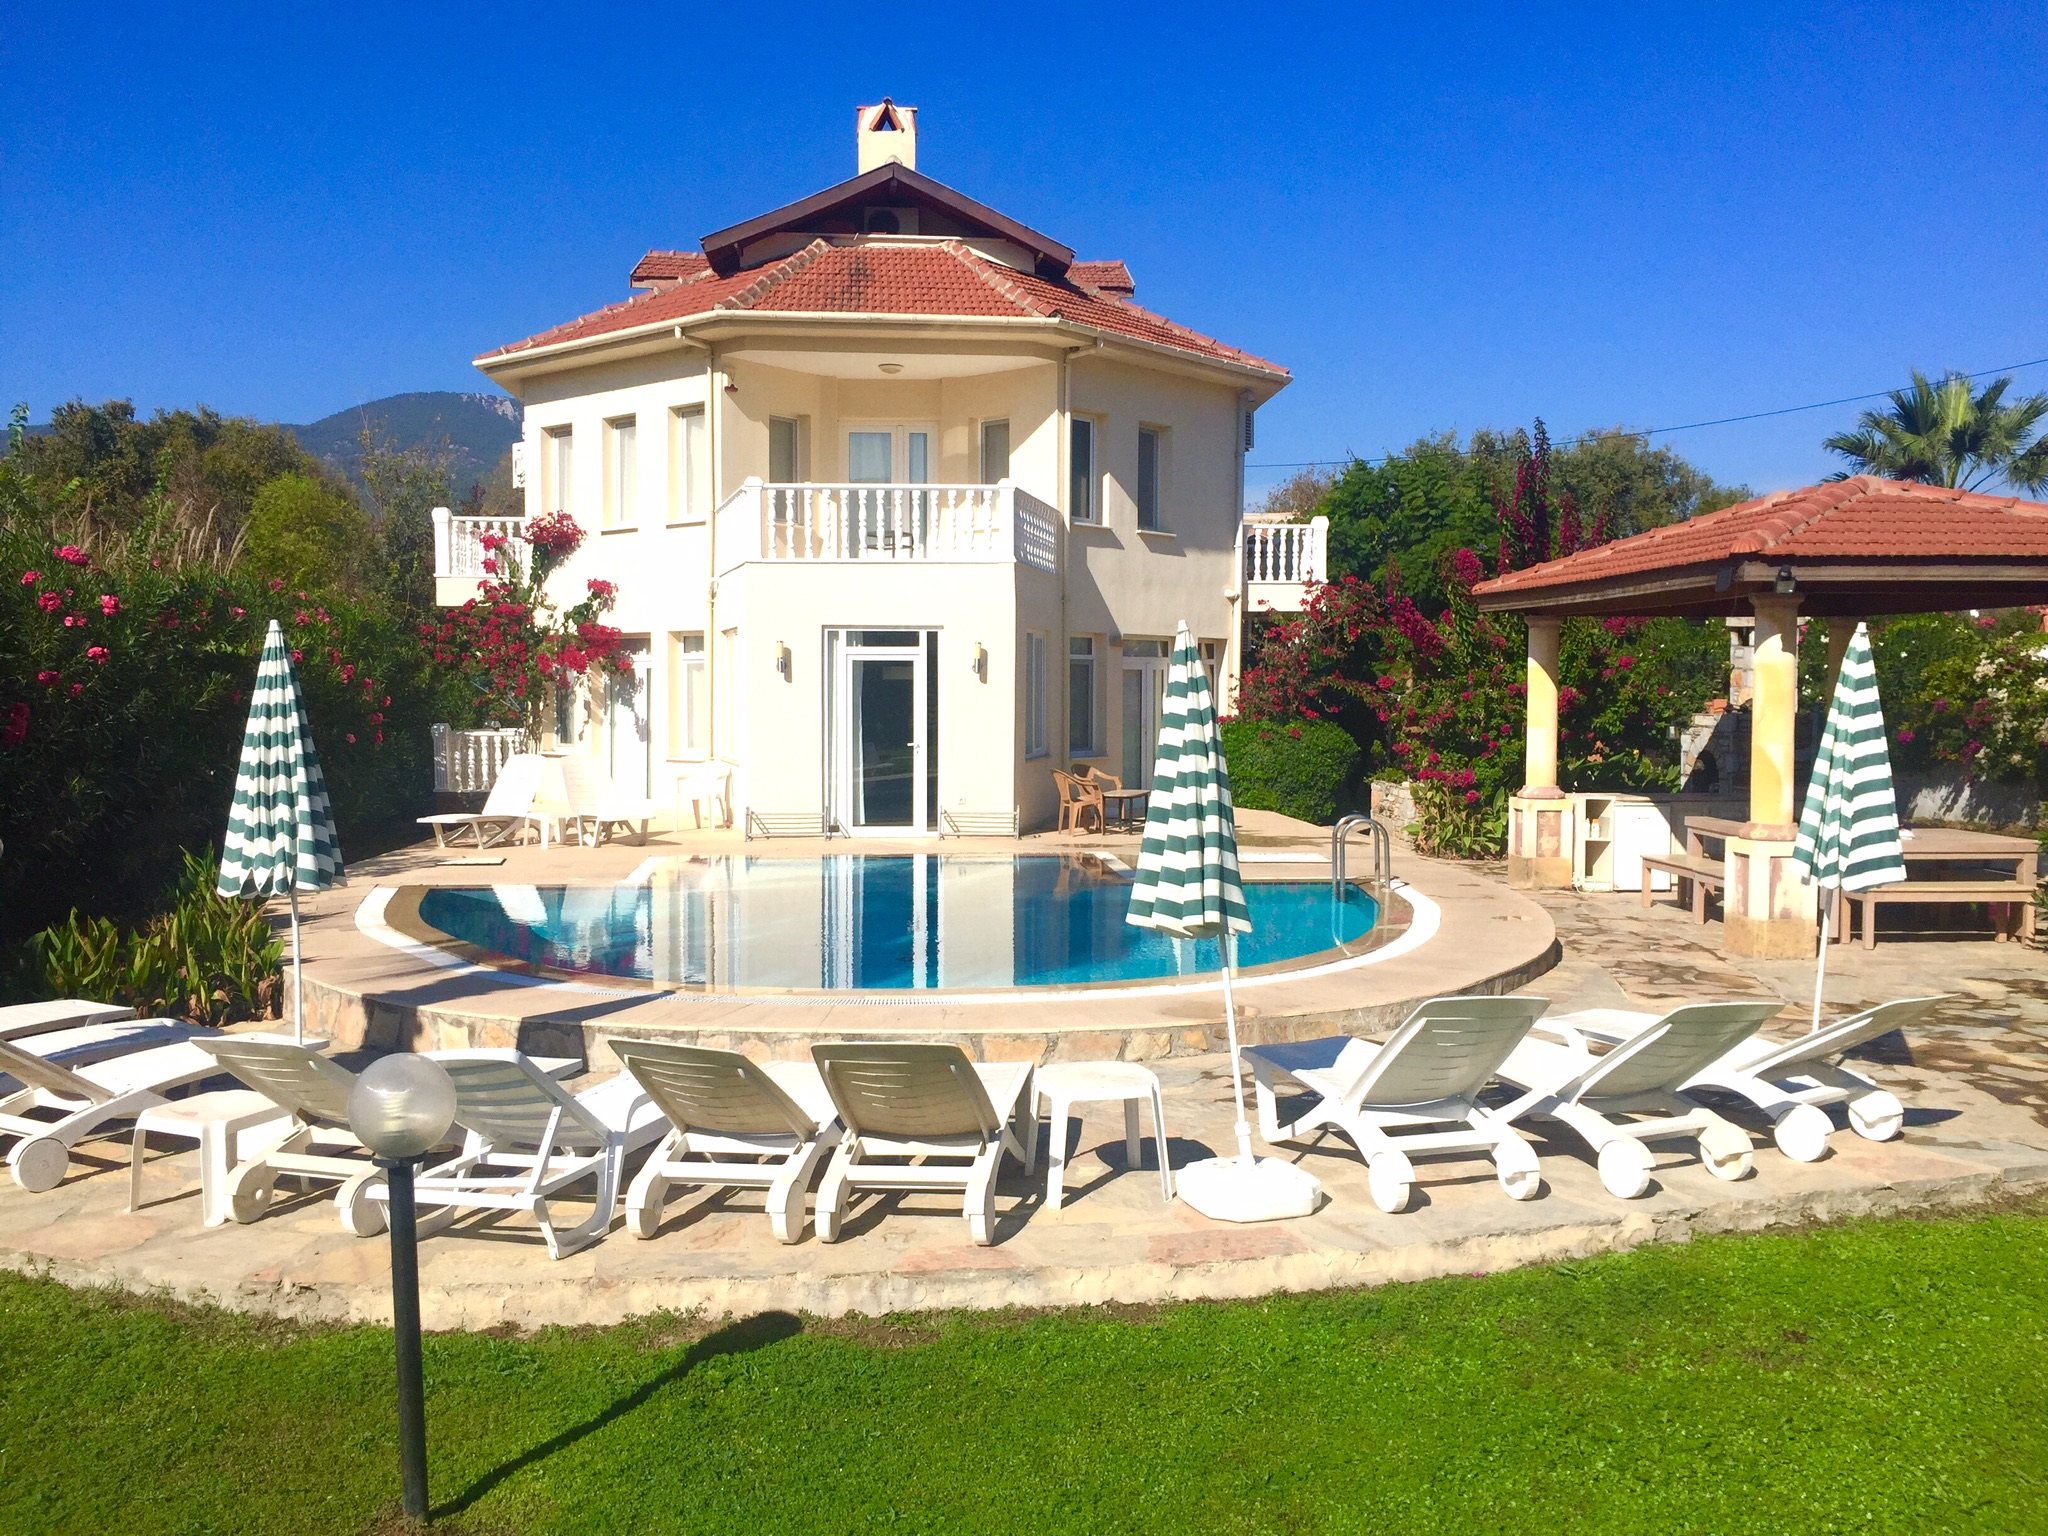 Dalyan Jewel – 6 bedroom villa private pool and bar free WiFi and Aircon